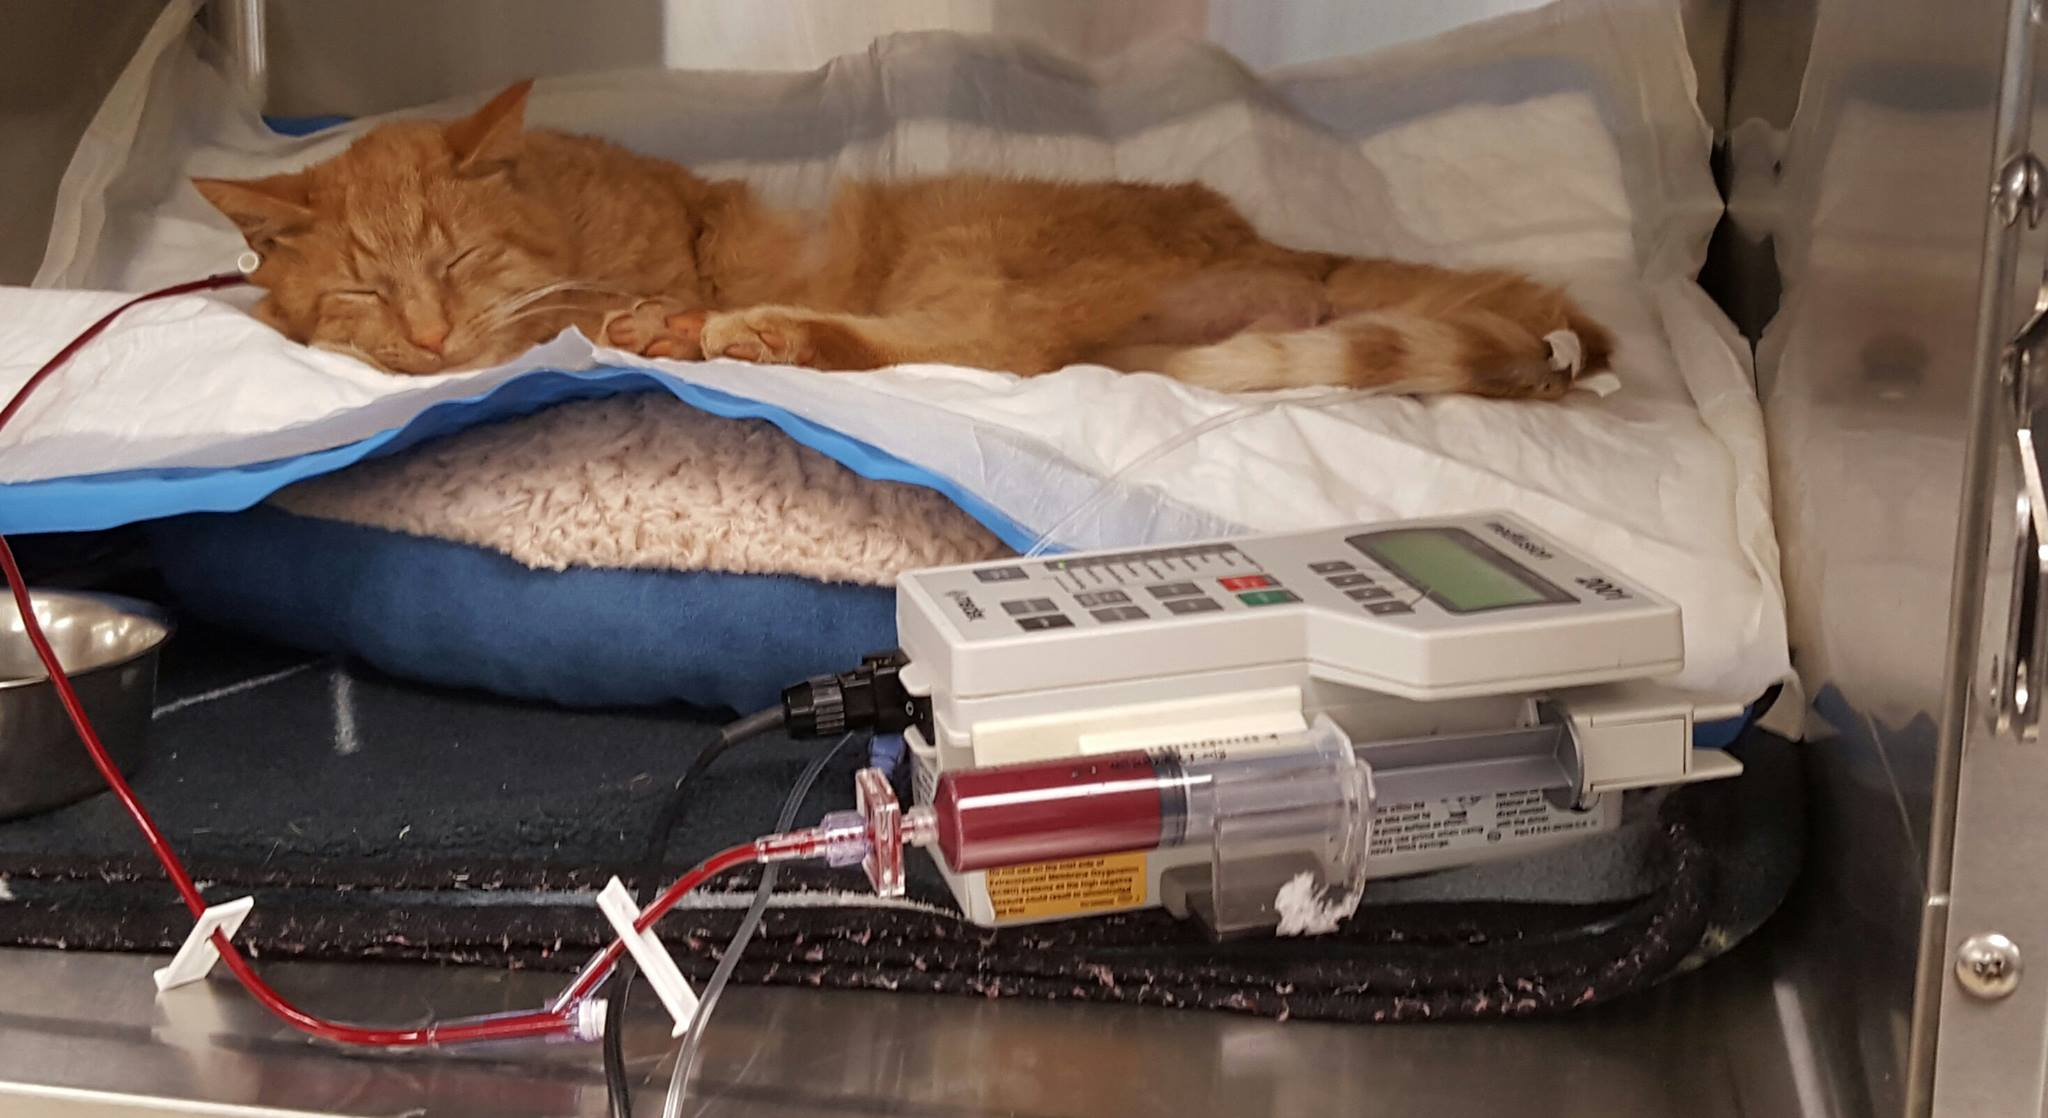 Getting his blood transfusion.